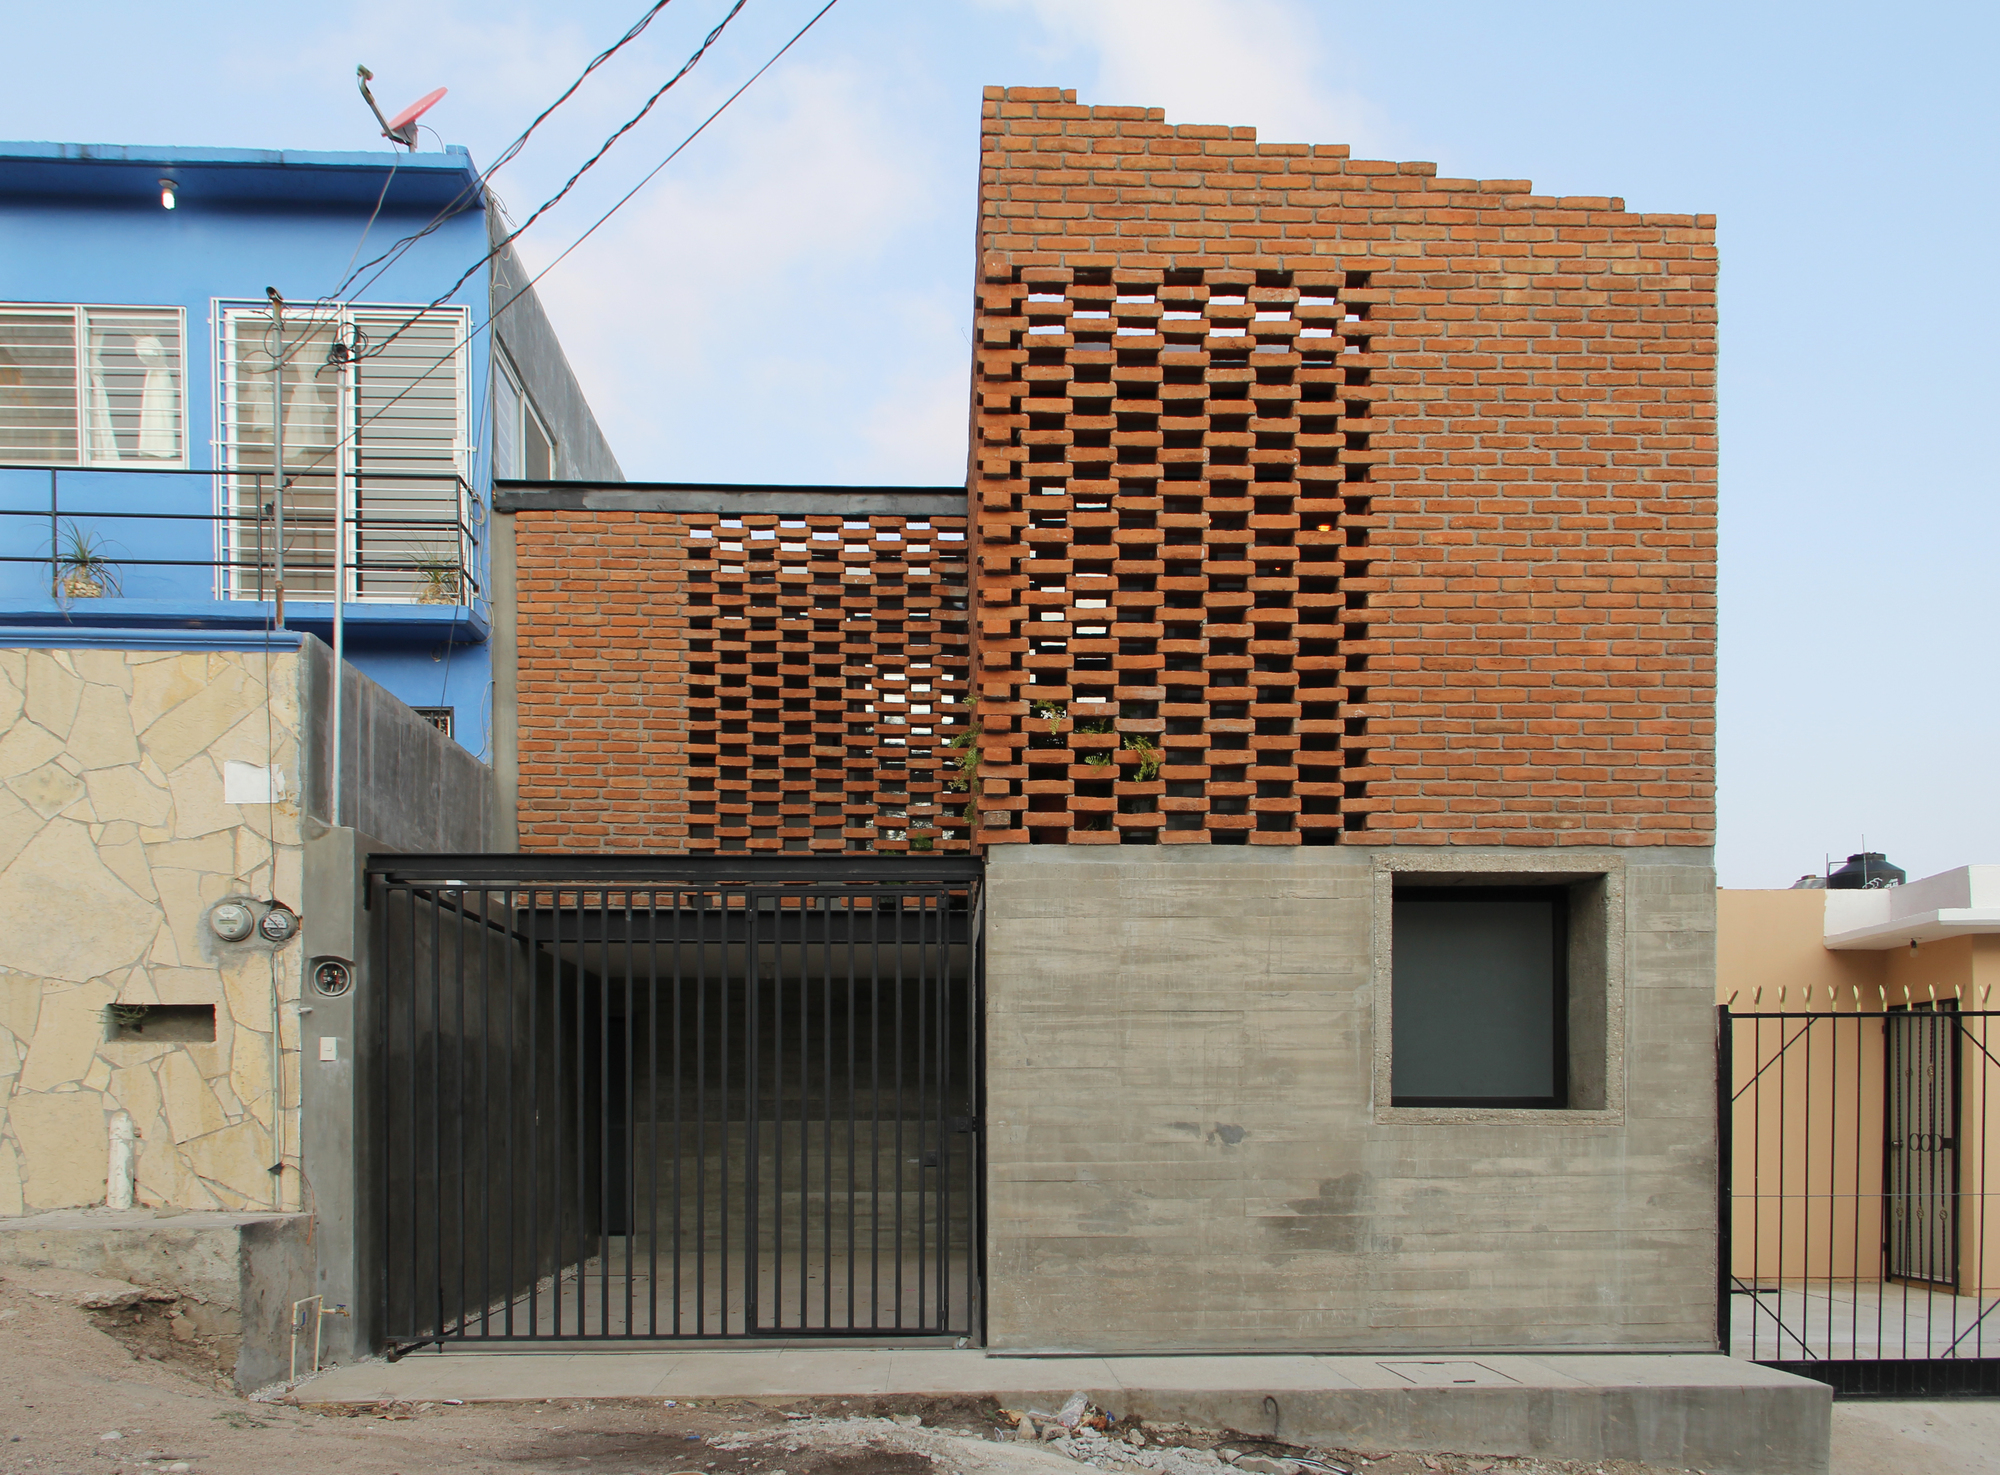 Tadeo house apaloosa estudio de arquitectura y dise o for Arquitectura design interiores